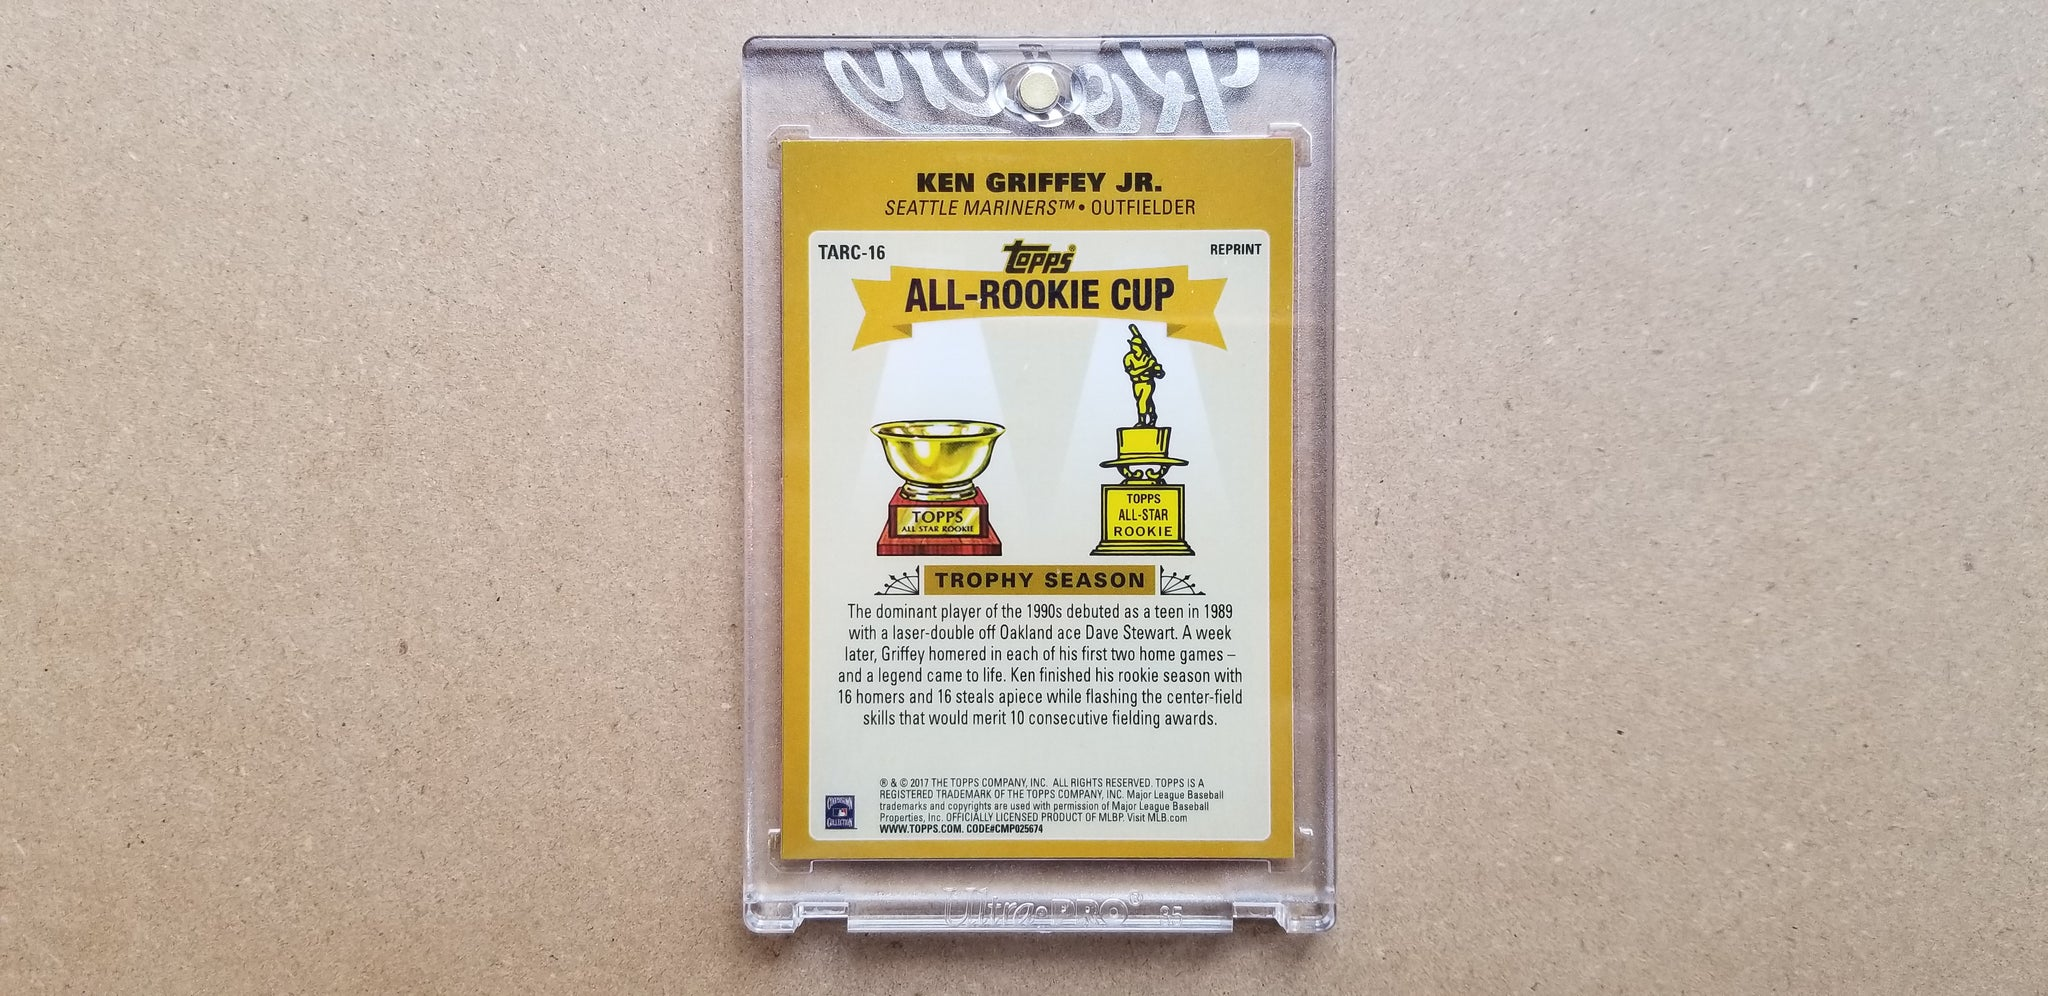 Baseball card art by Matthew Lee Rosen (aka Matthew Rosen) - Ken Griffey Jr Chrome C2